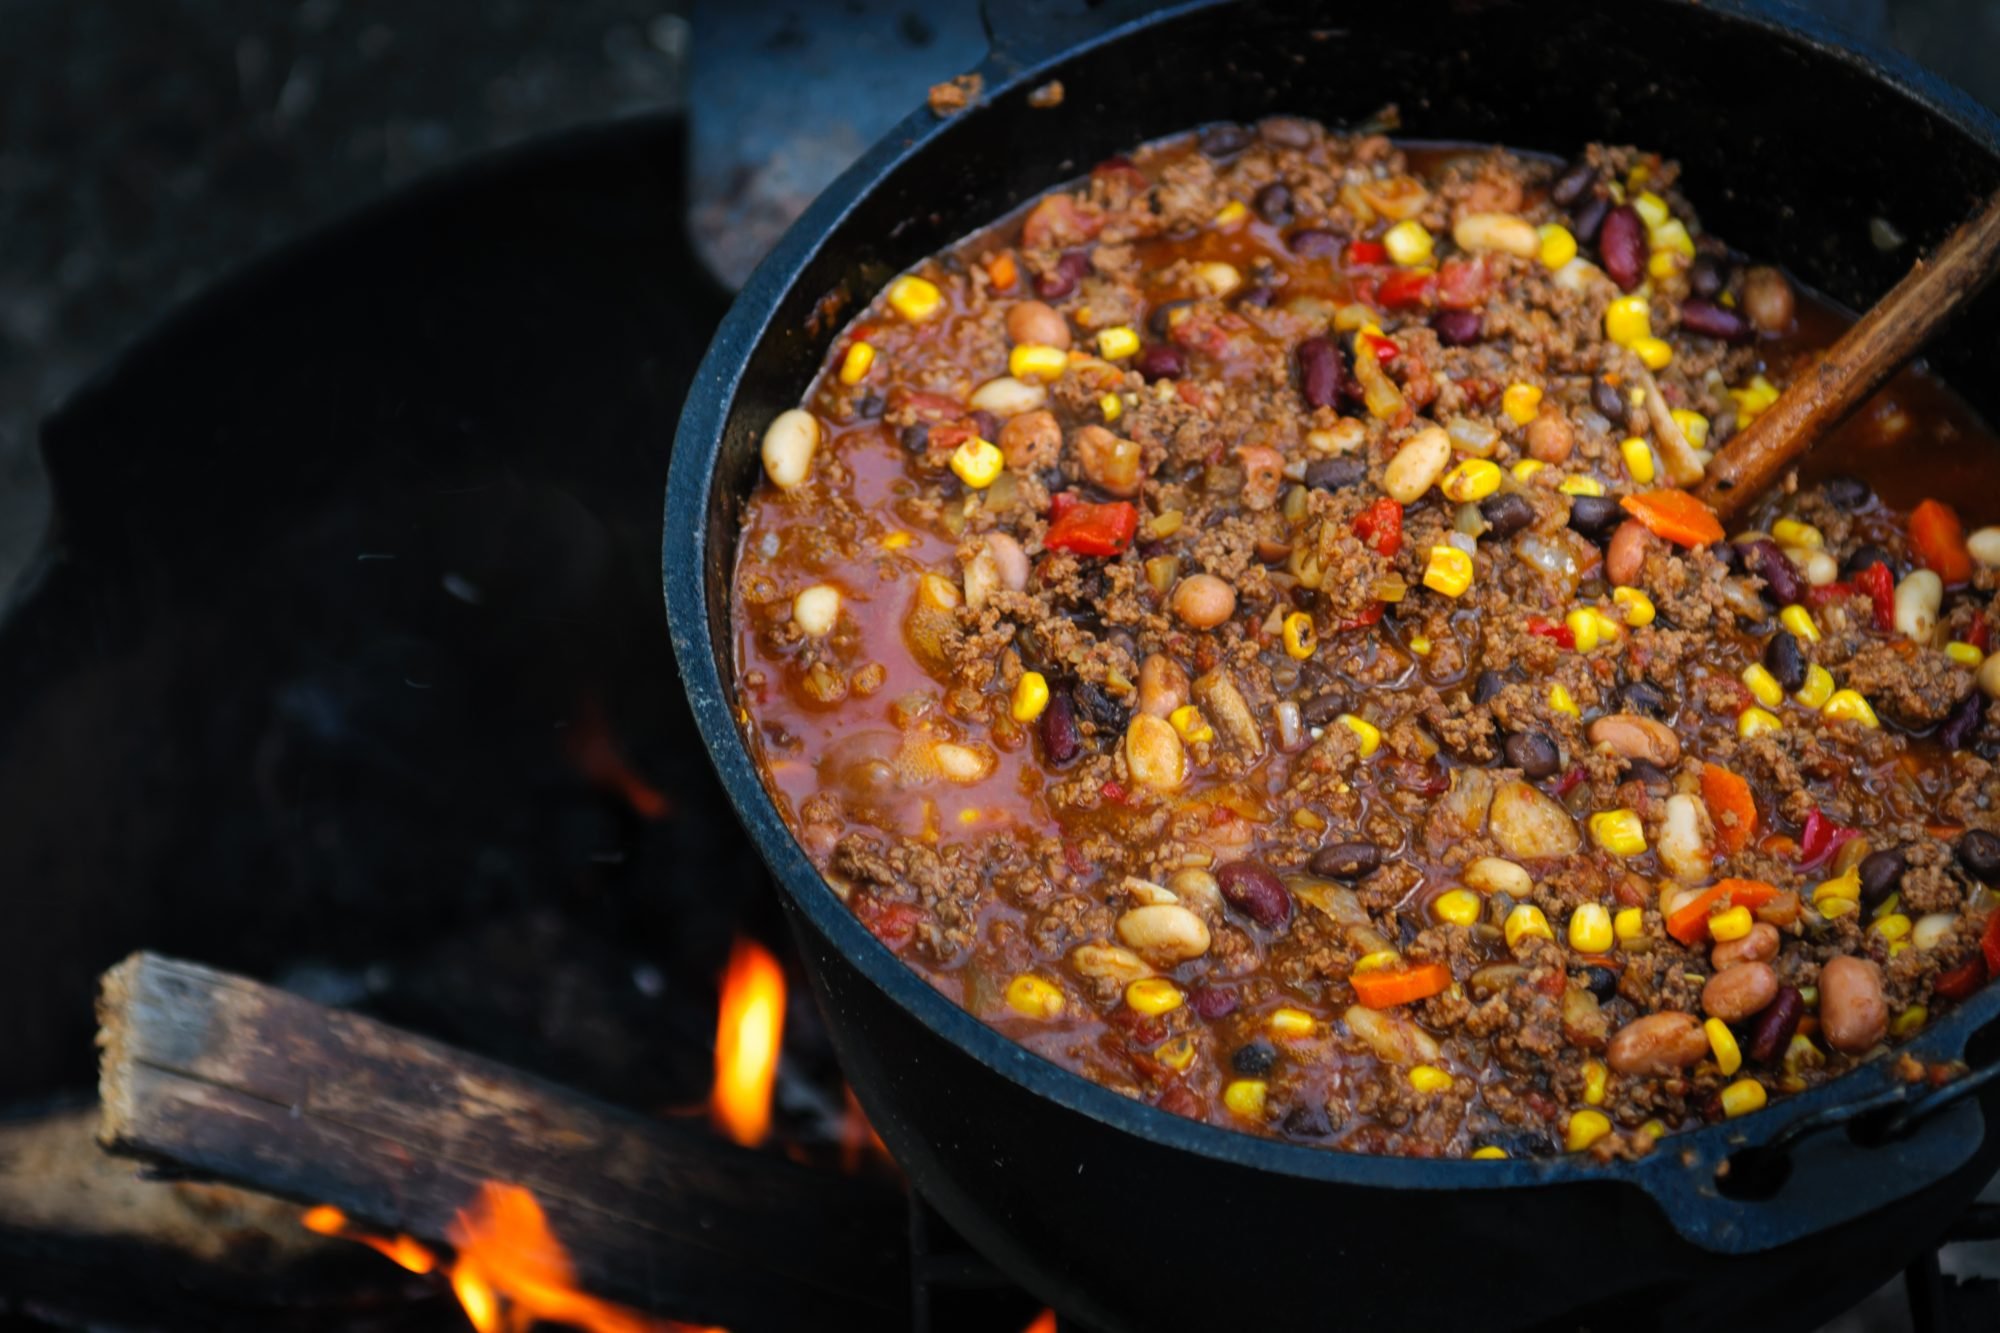 The Most Useful Piece of Cookware to Bring Camping